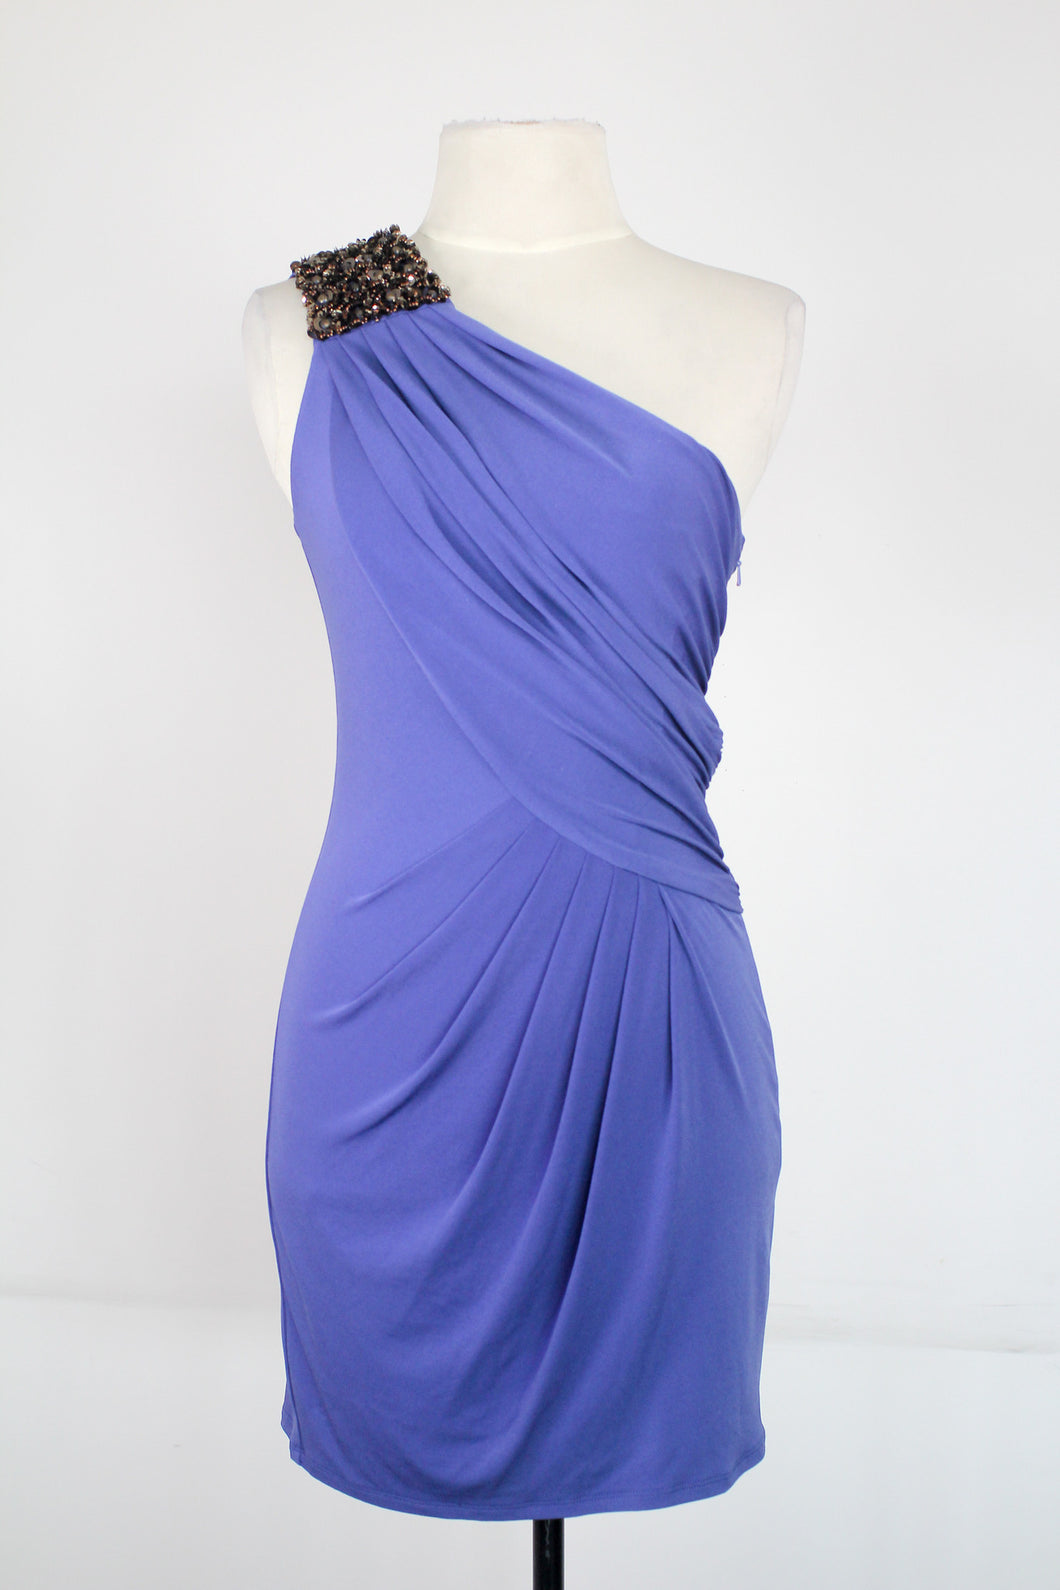 Zara Blue One Shoulder Dress with Beaded Accent